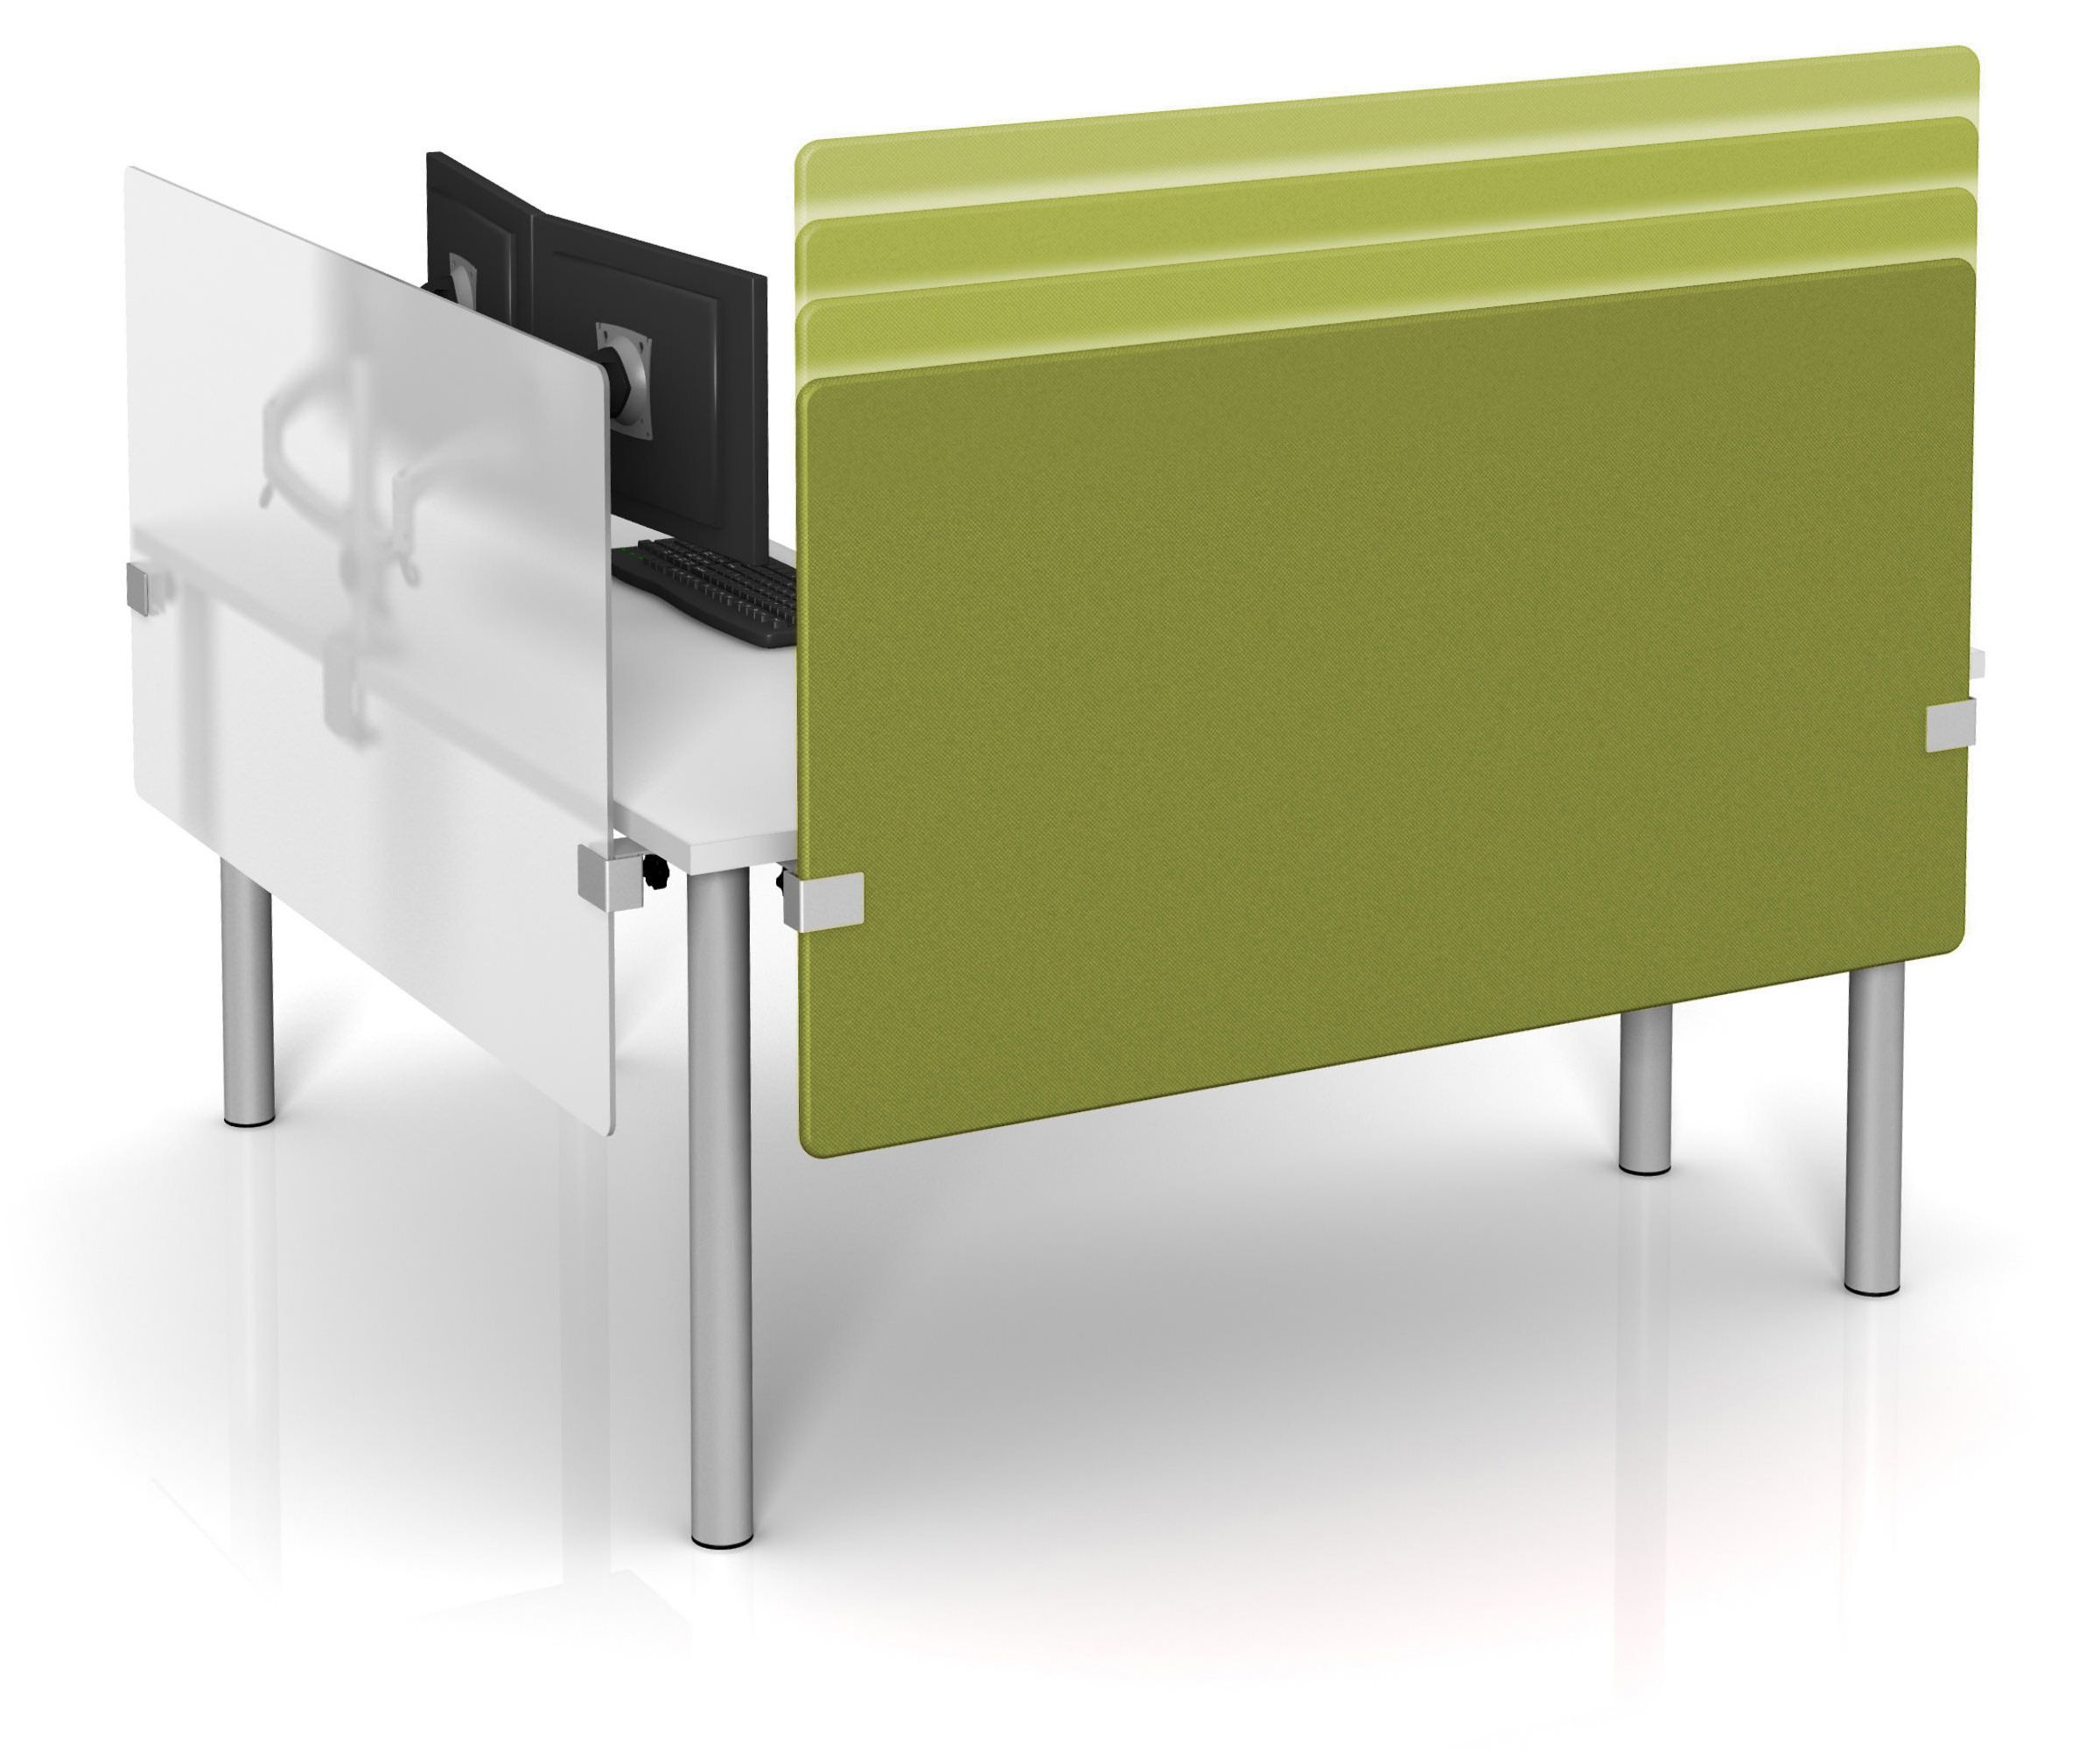 height adjustable desk dividers in fabric and frosted acrylic by  - height adjustable desk dividers in fabric and frosted acrylic by merge works